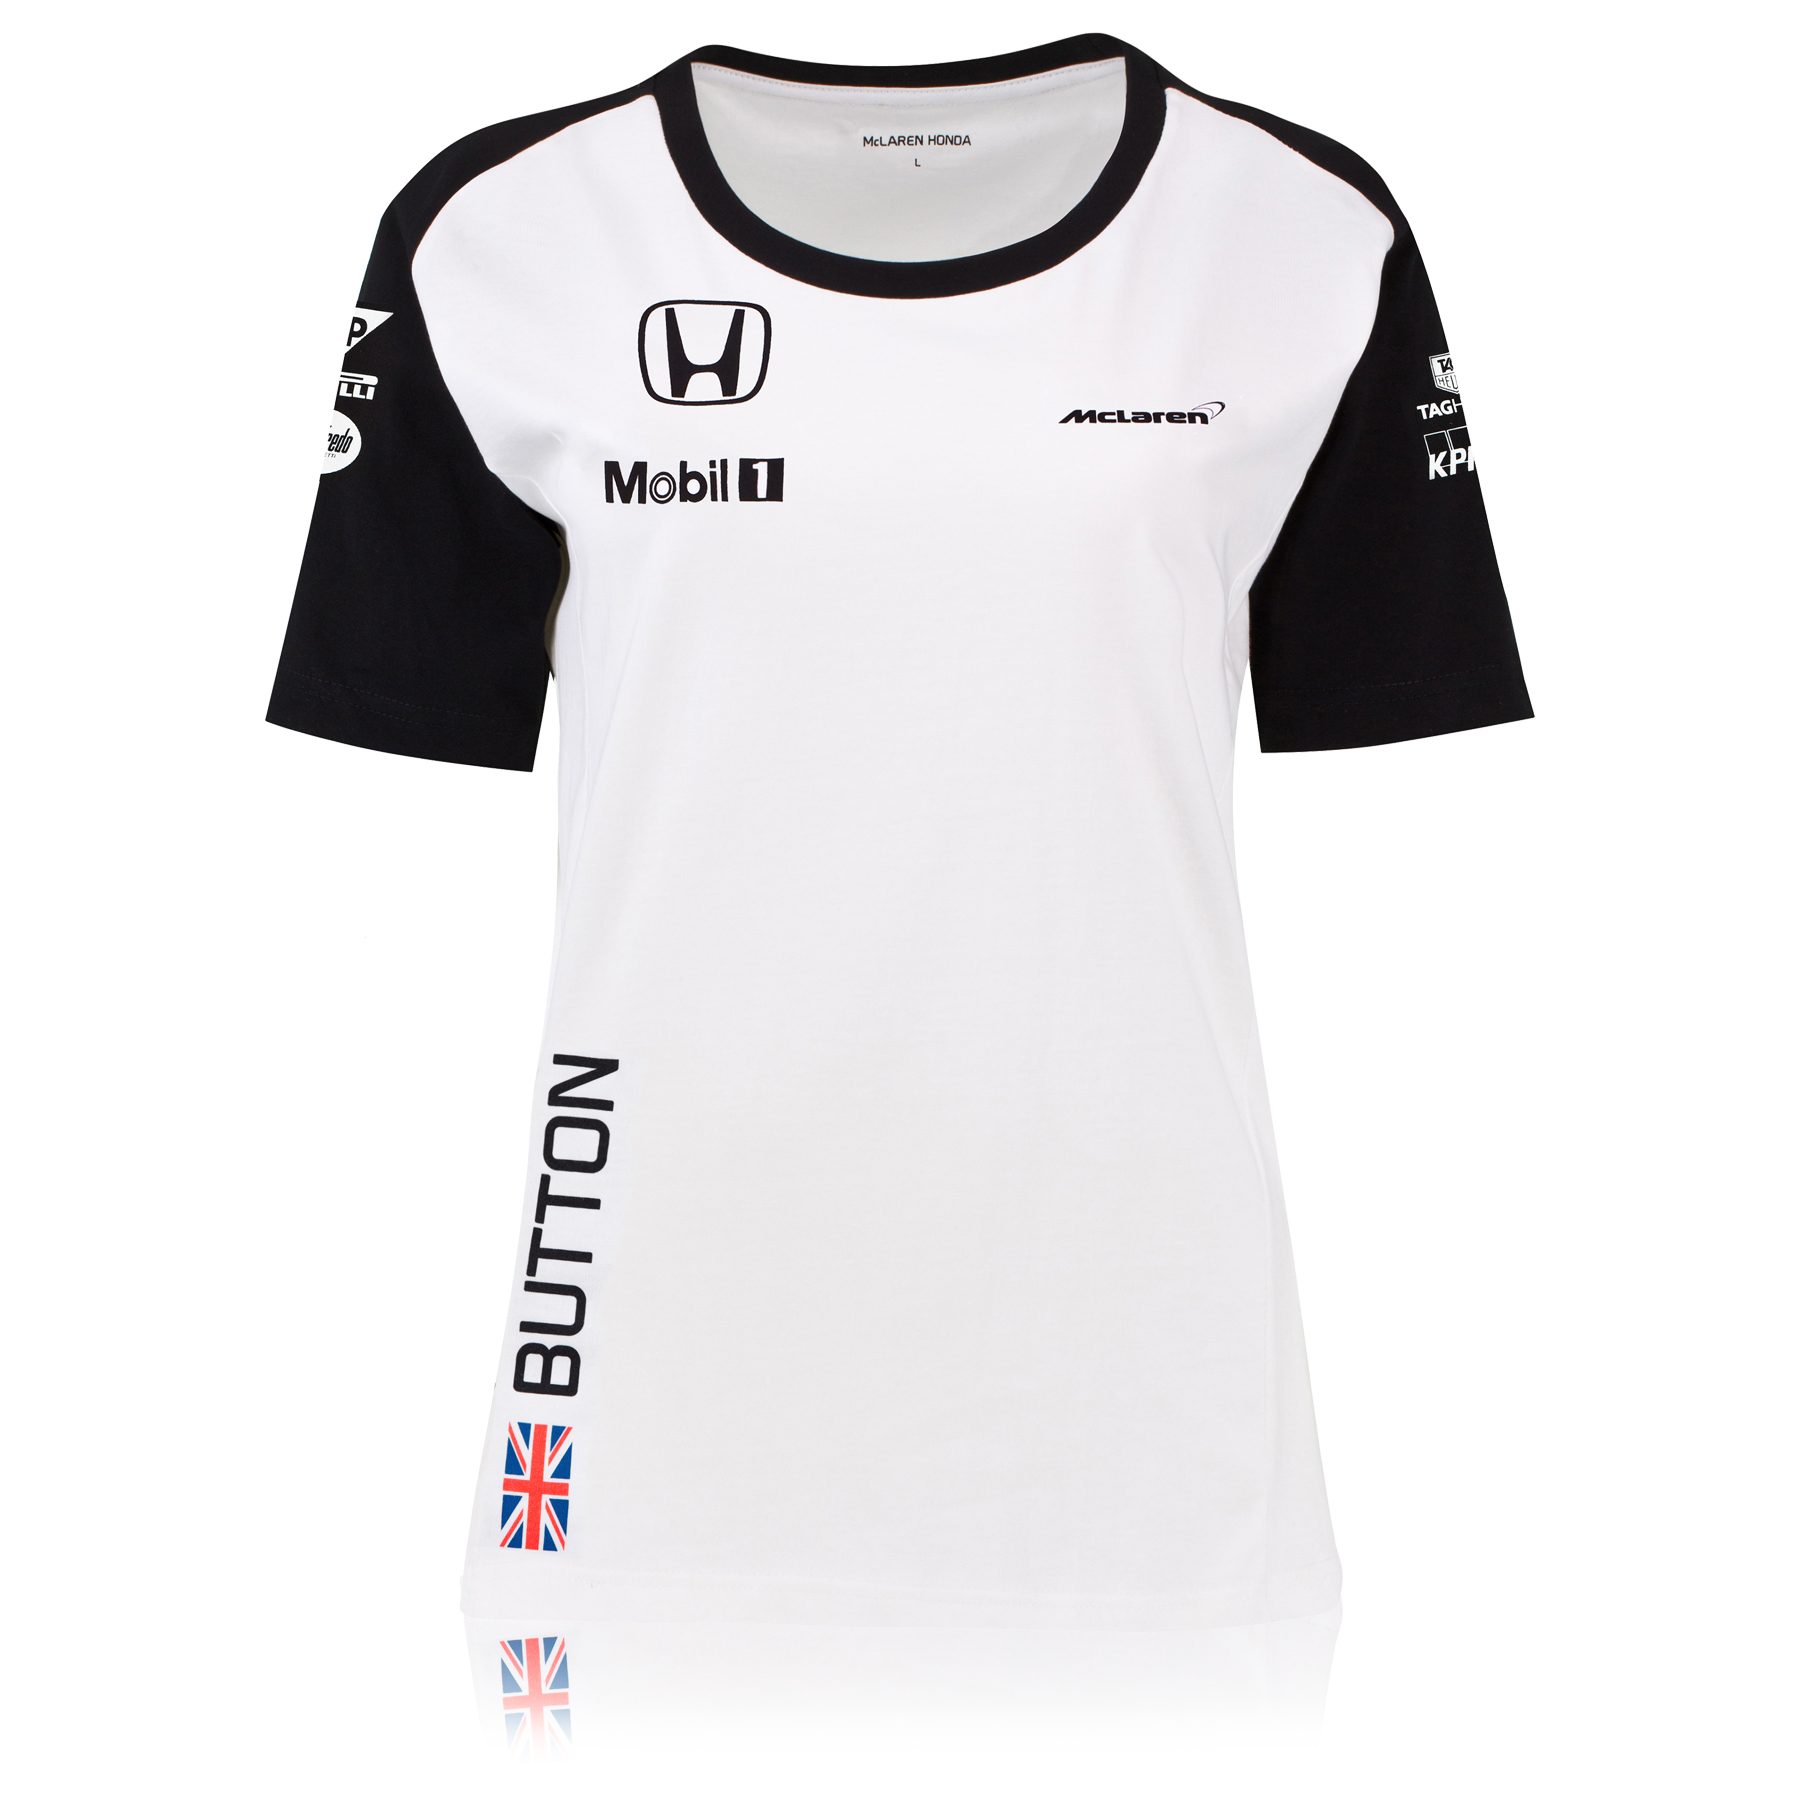 McLaren Honda Jenson Button Team T-Shirt Female White